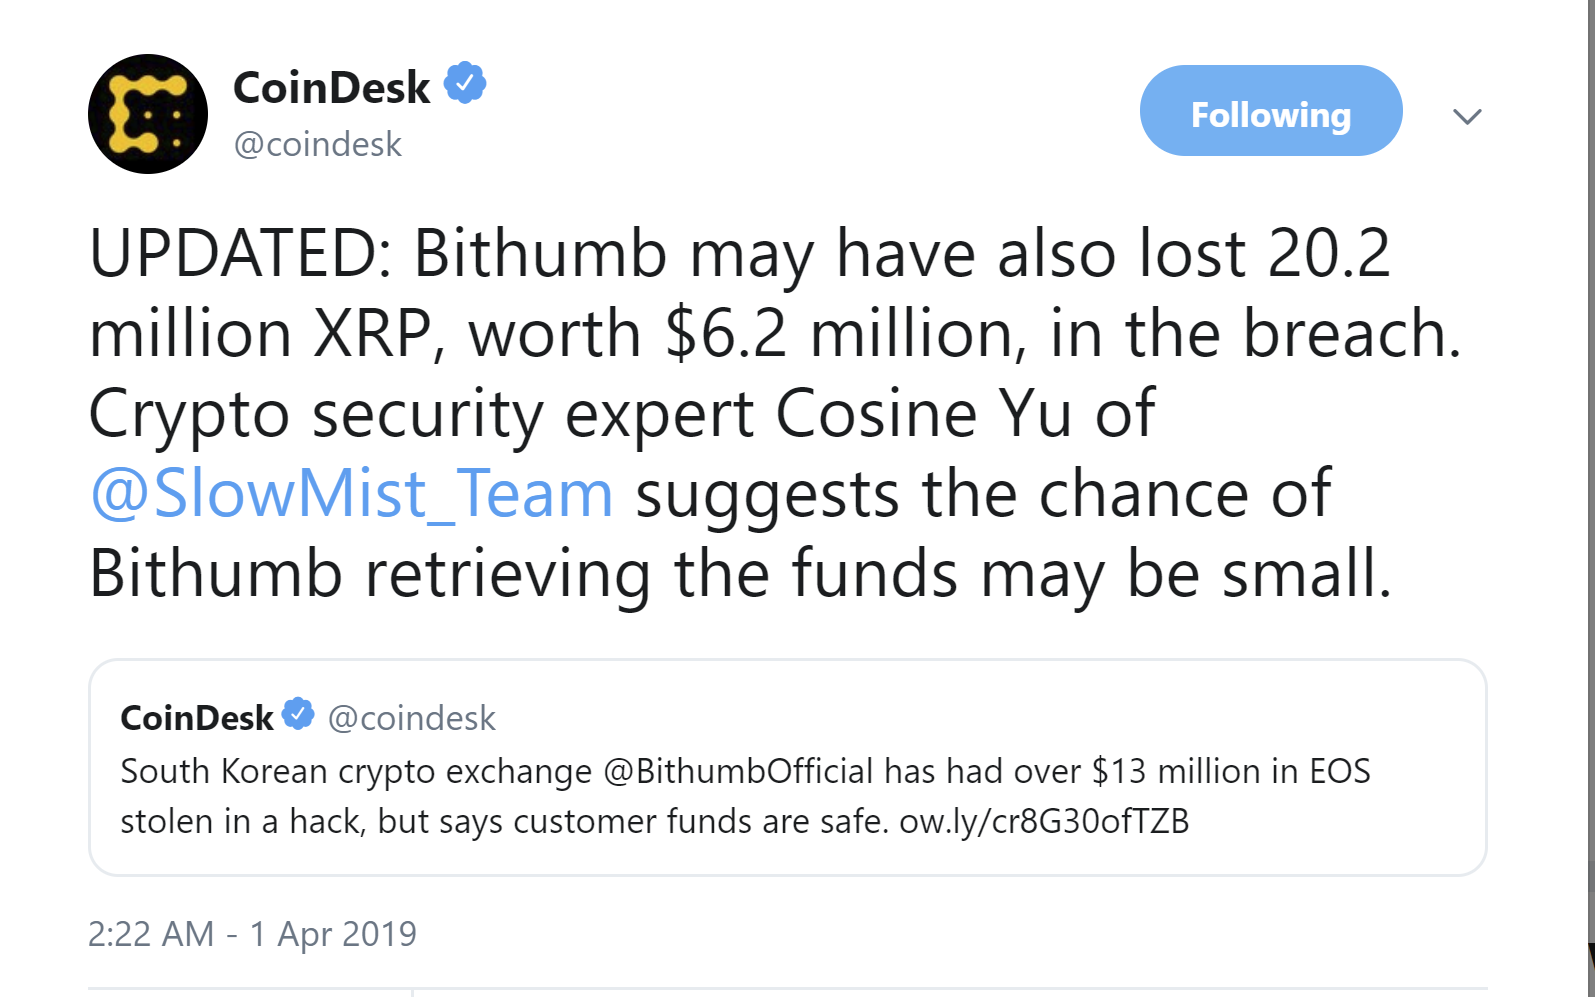 CoinDesk Bithumb Update Tweet on hack